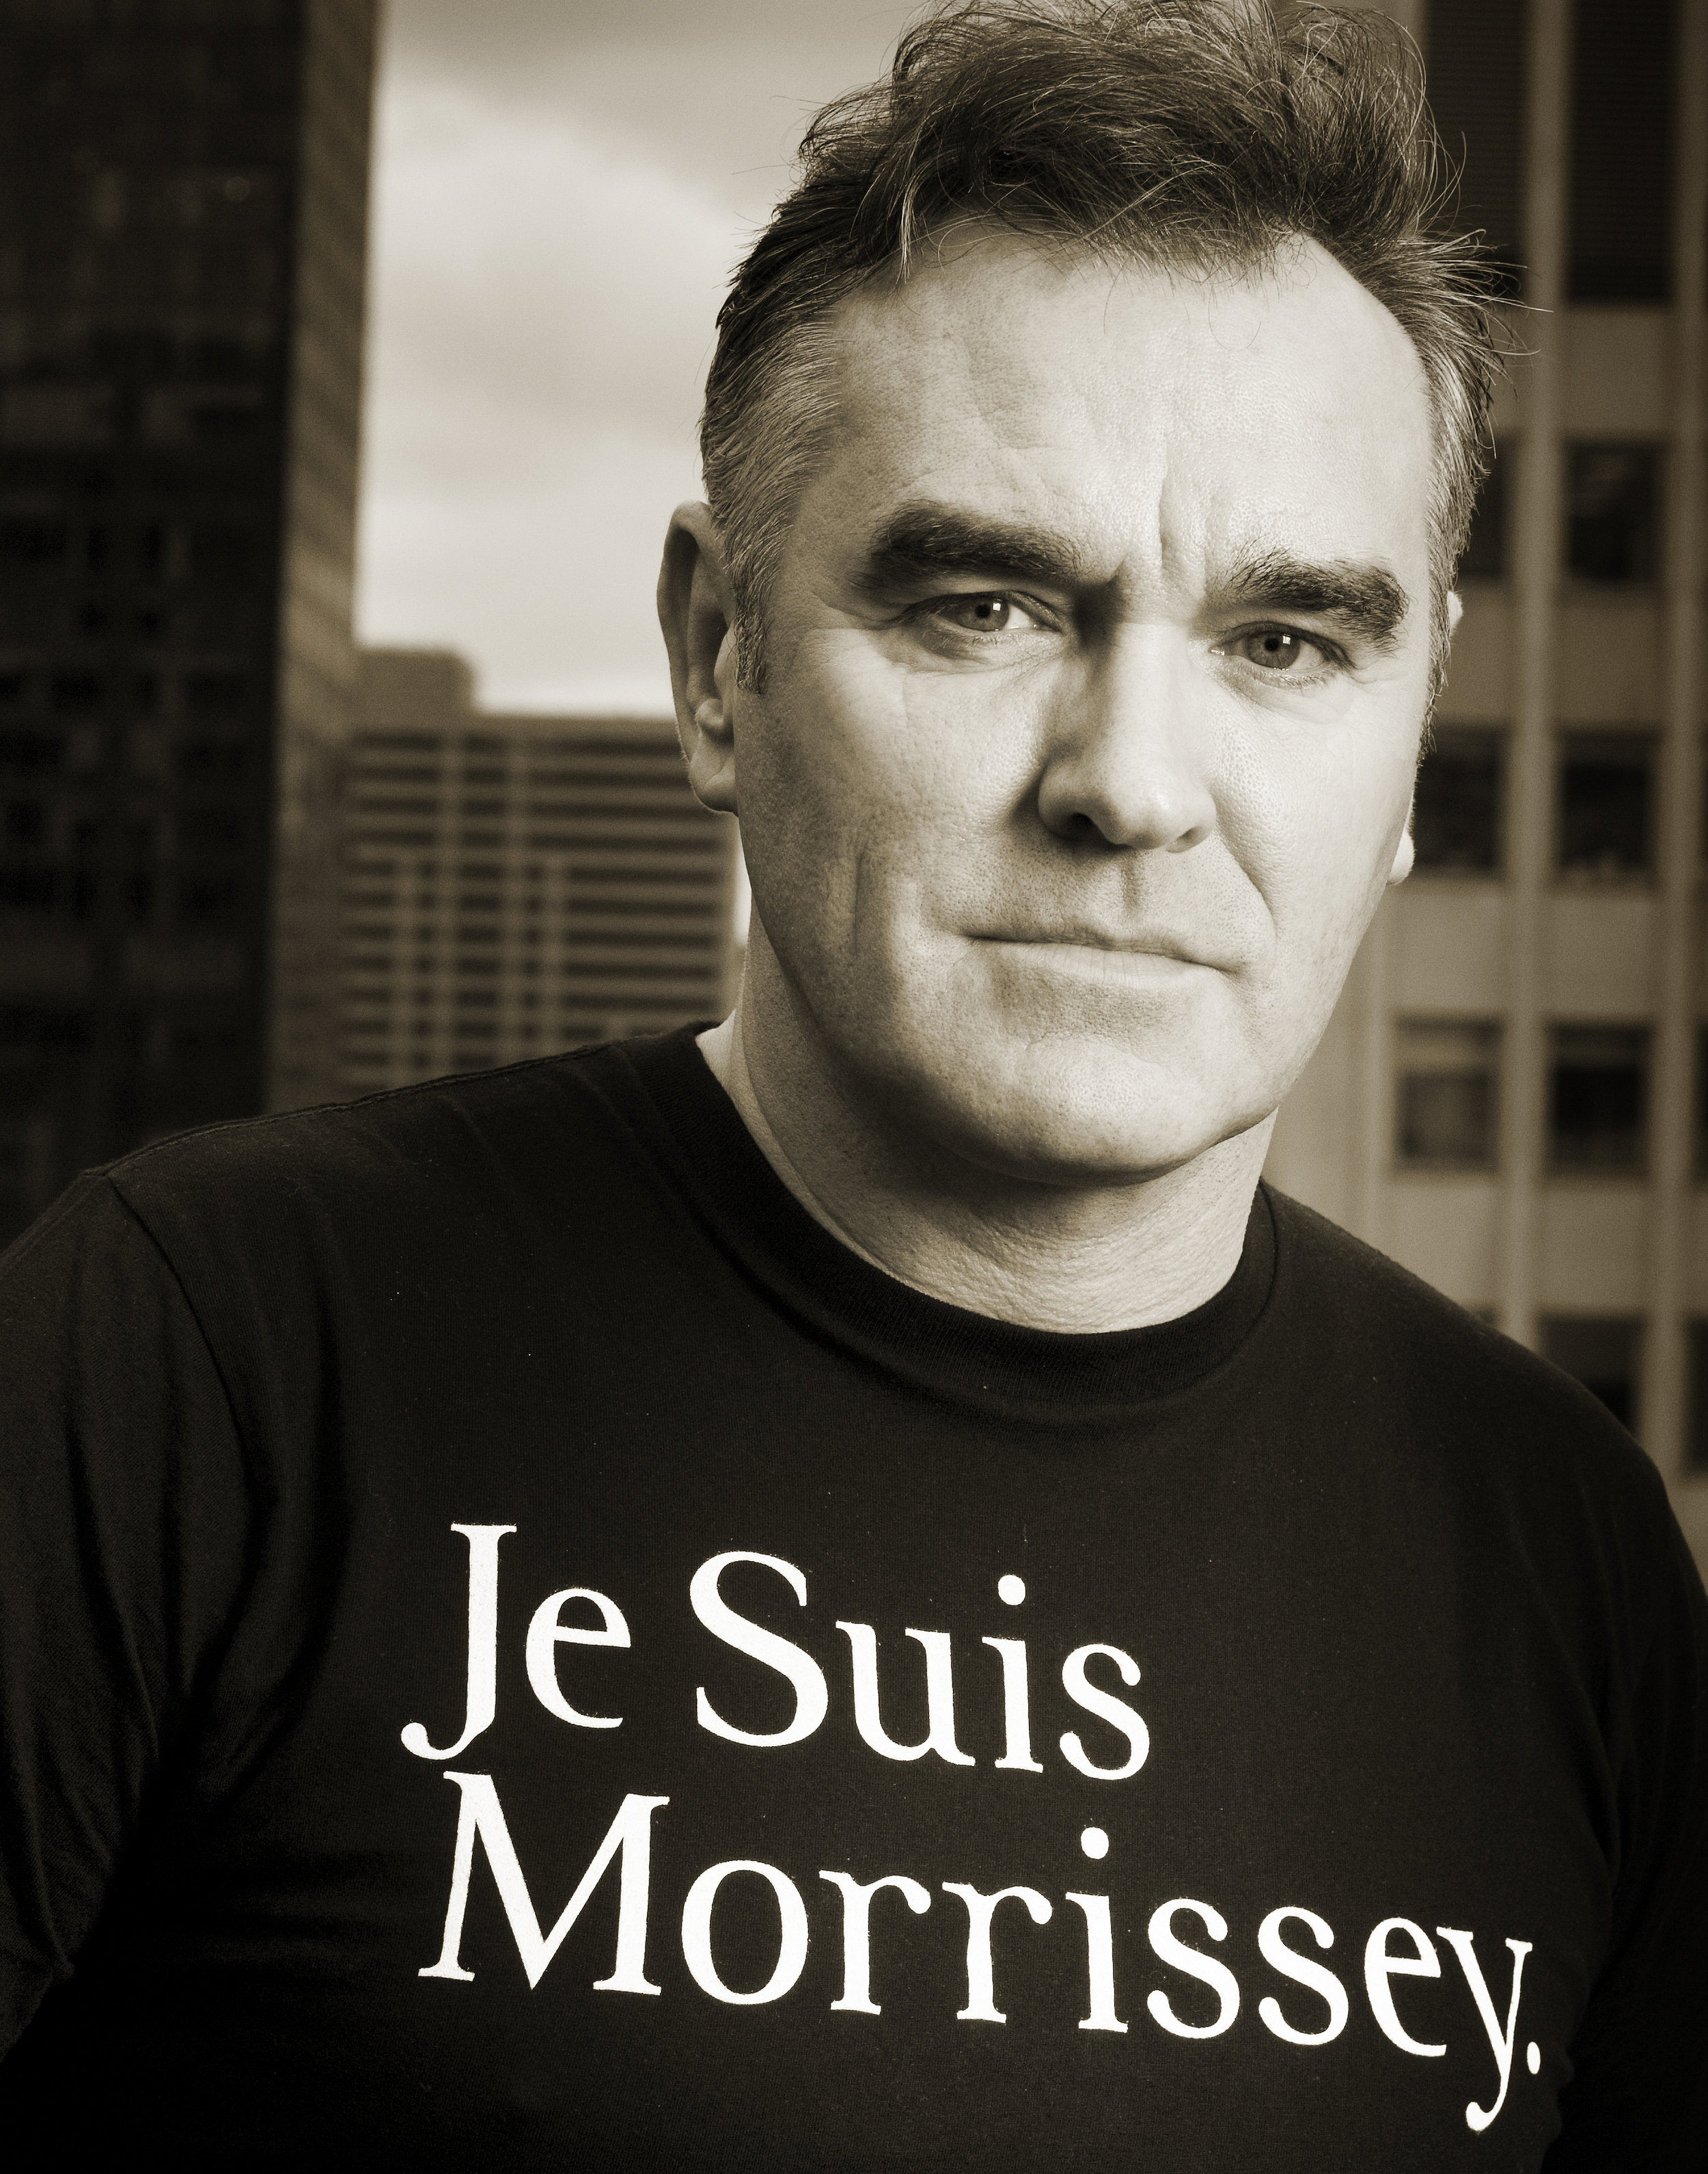 Morrissey, New York City, 2007